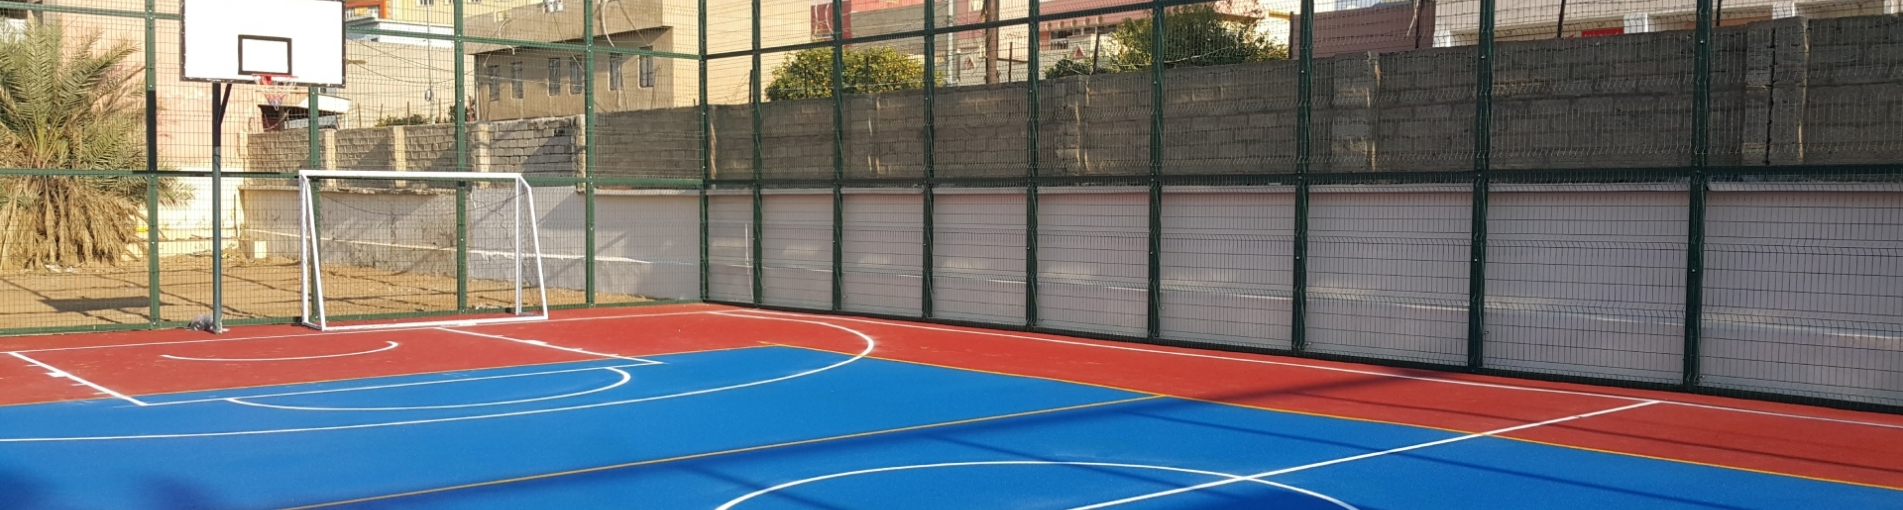 For Multipurpose Field Construction Cost